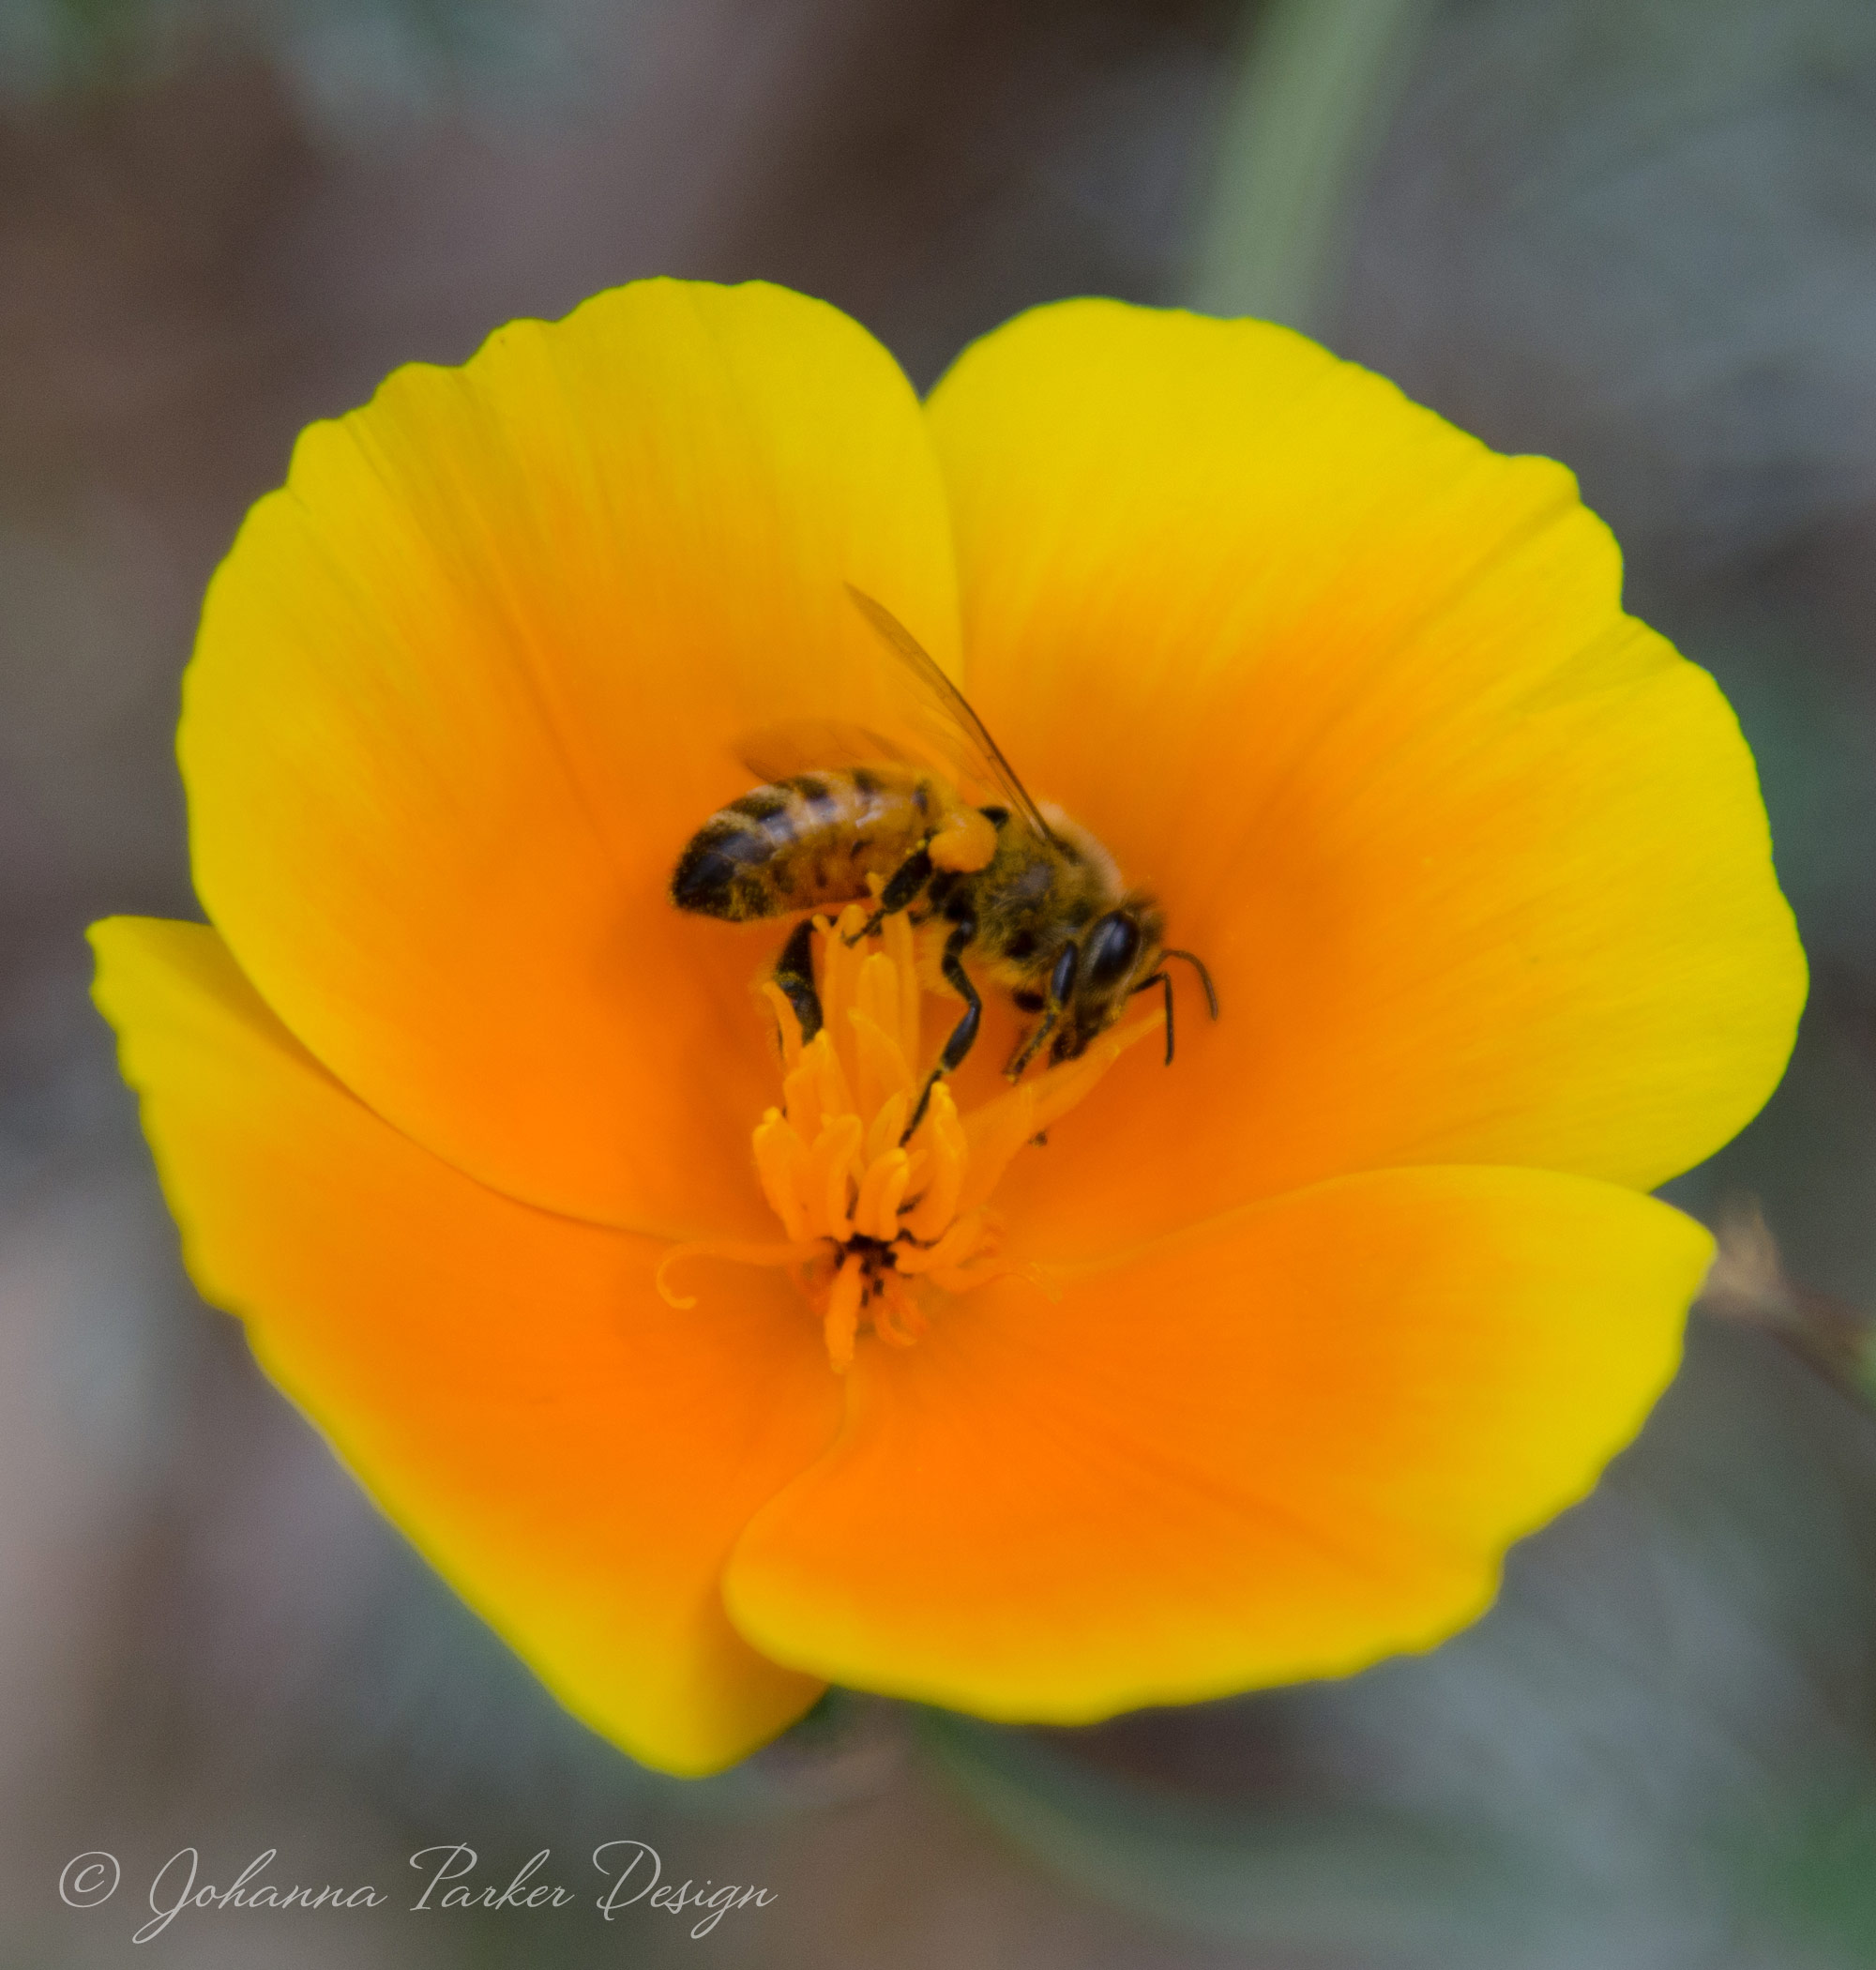 This year, our garden is full of orange poppies and bees! They go hand in hand, and I captured this photo to express the mystery and whimsy of nature that offers more artistic inspiration for me.